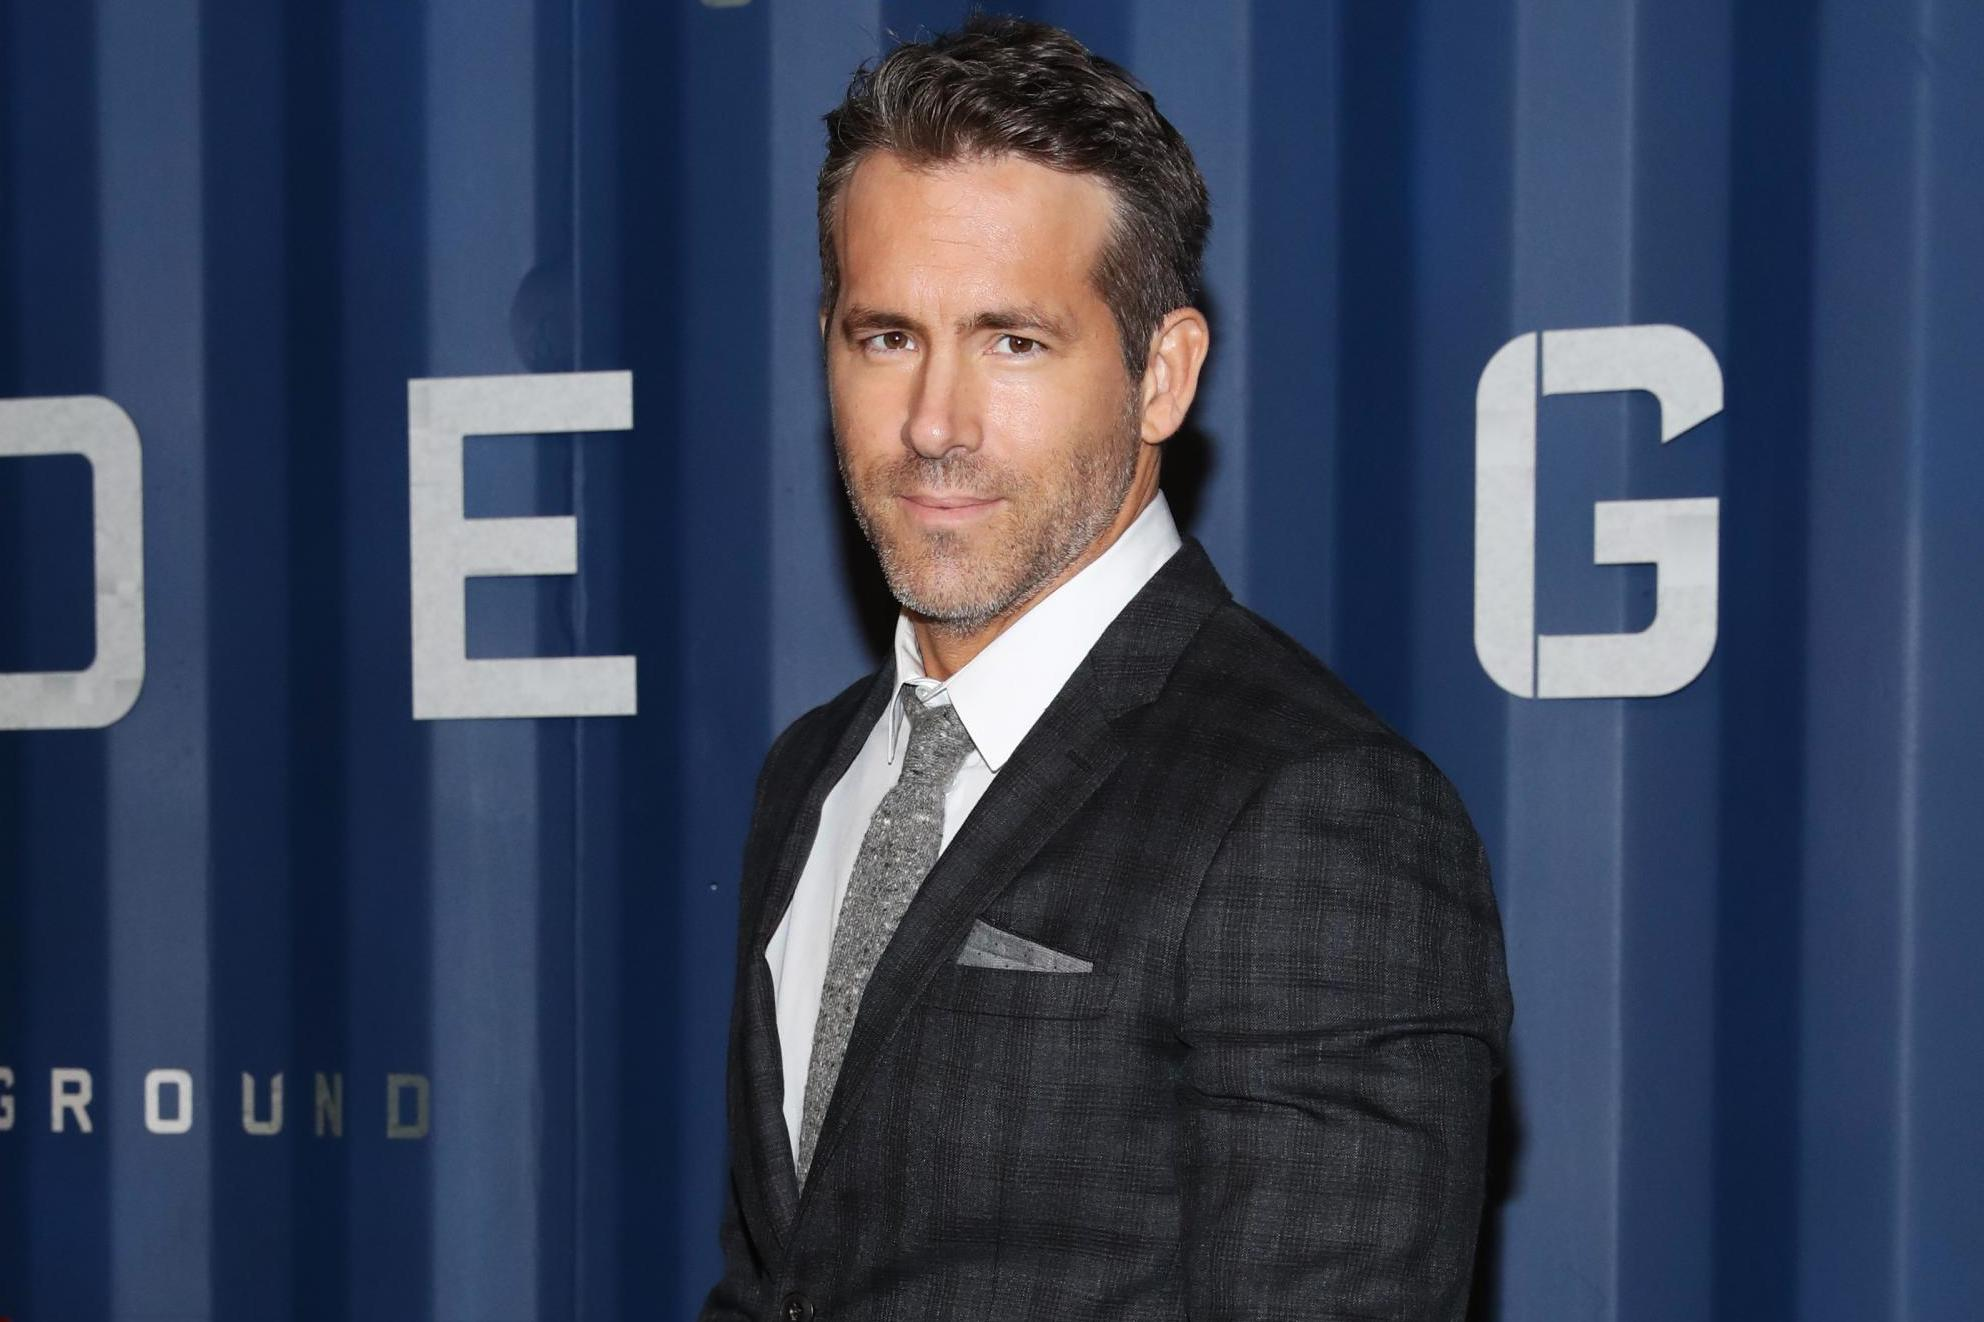 Ryan Reynolds had a truly epic response to being asked if he missed 'masculine company' in quarantine